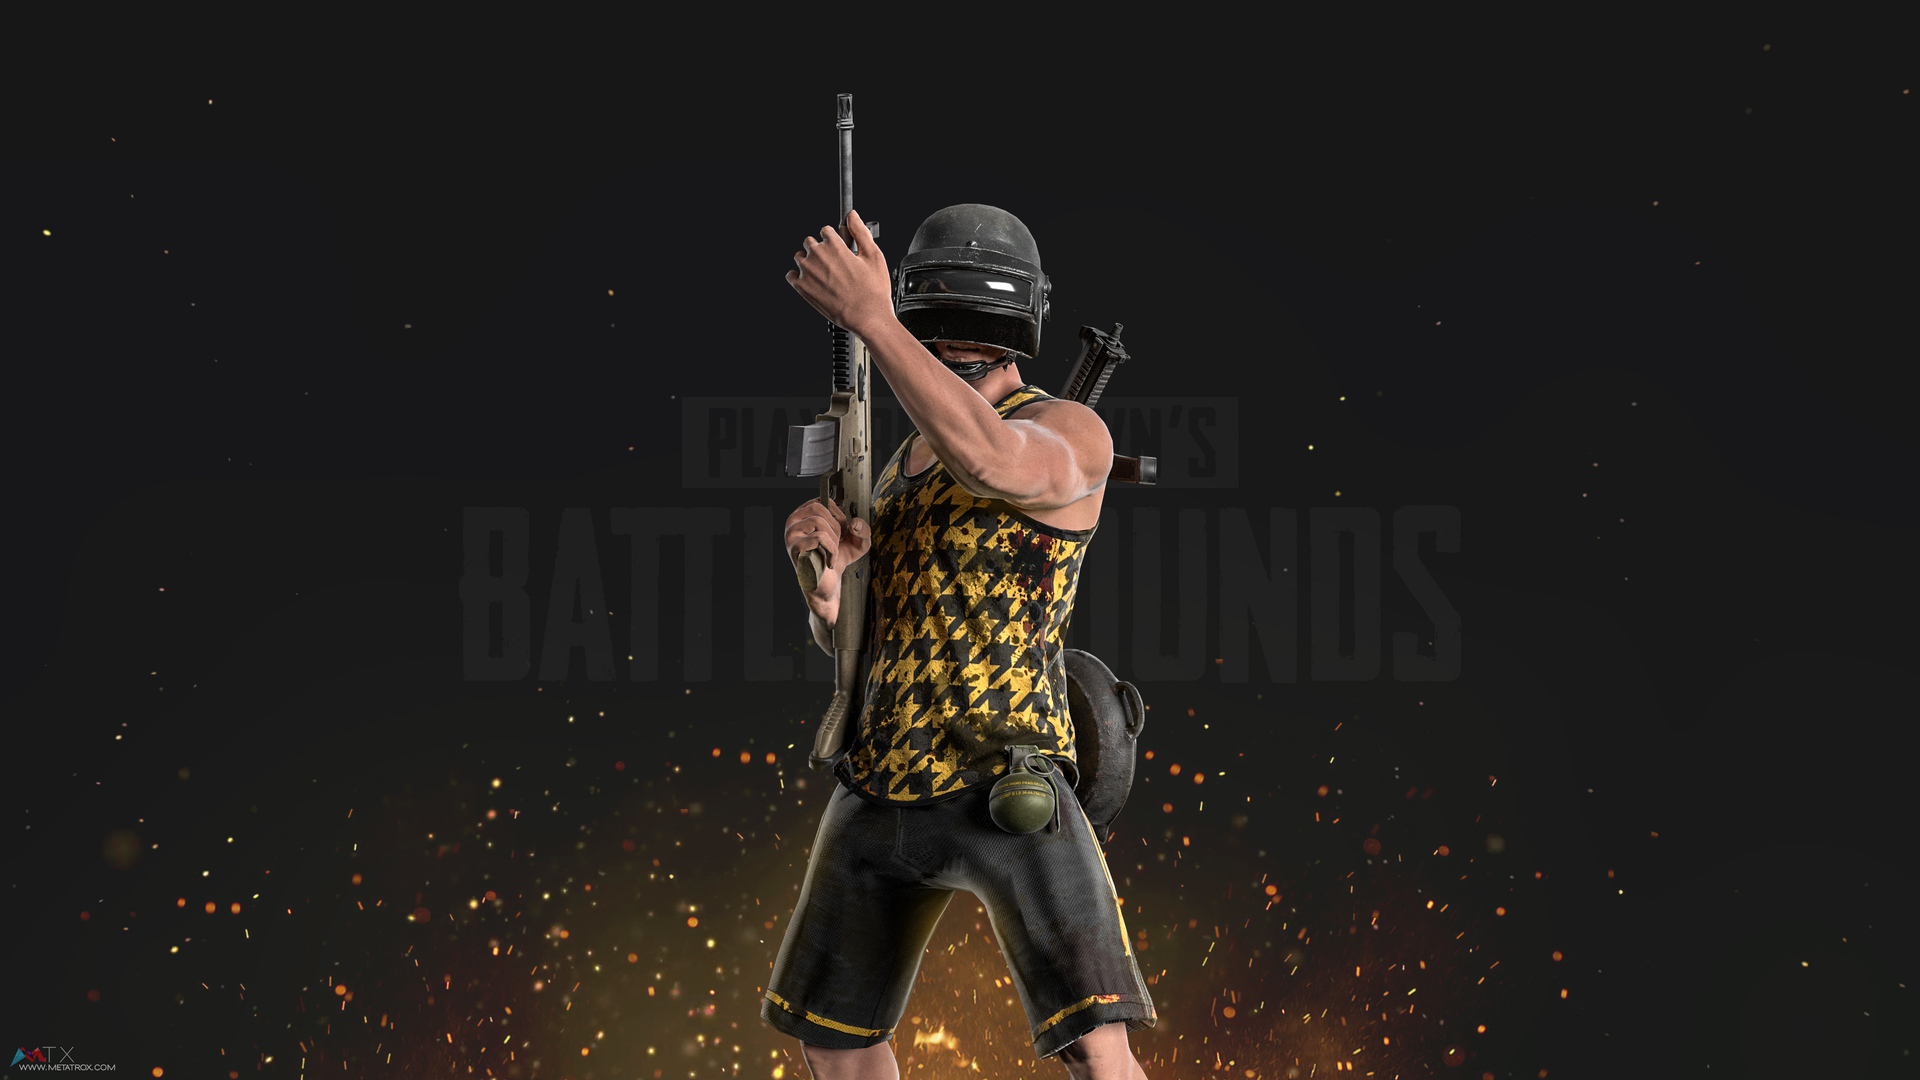 Pubg Wallpapers Hd 1080p: 1920x1080 Pubg Laptop Full HD 1080P HD 4k Wallpapers